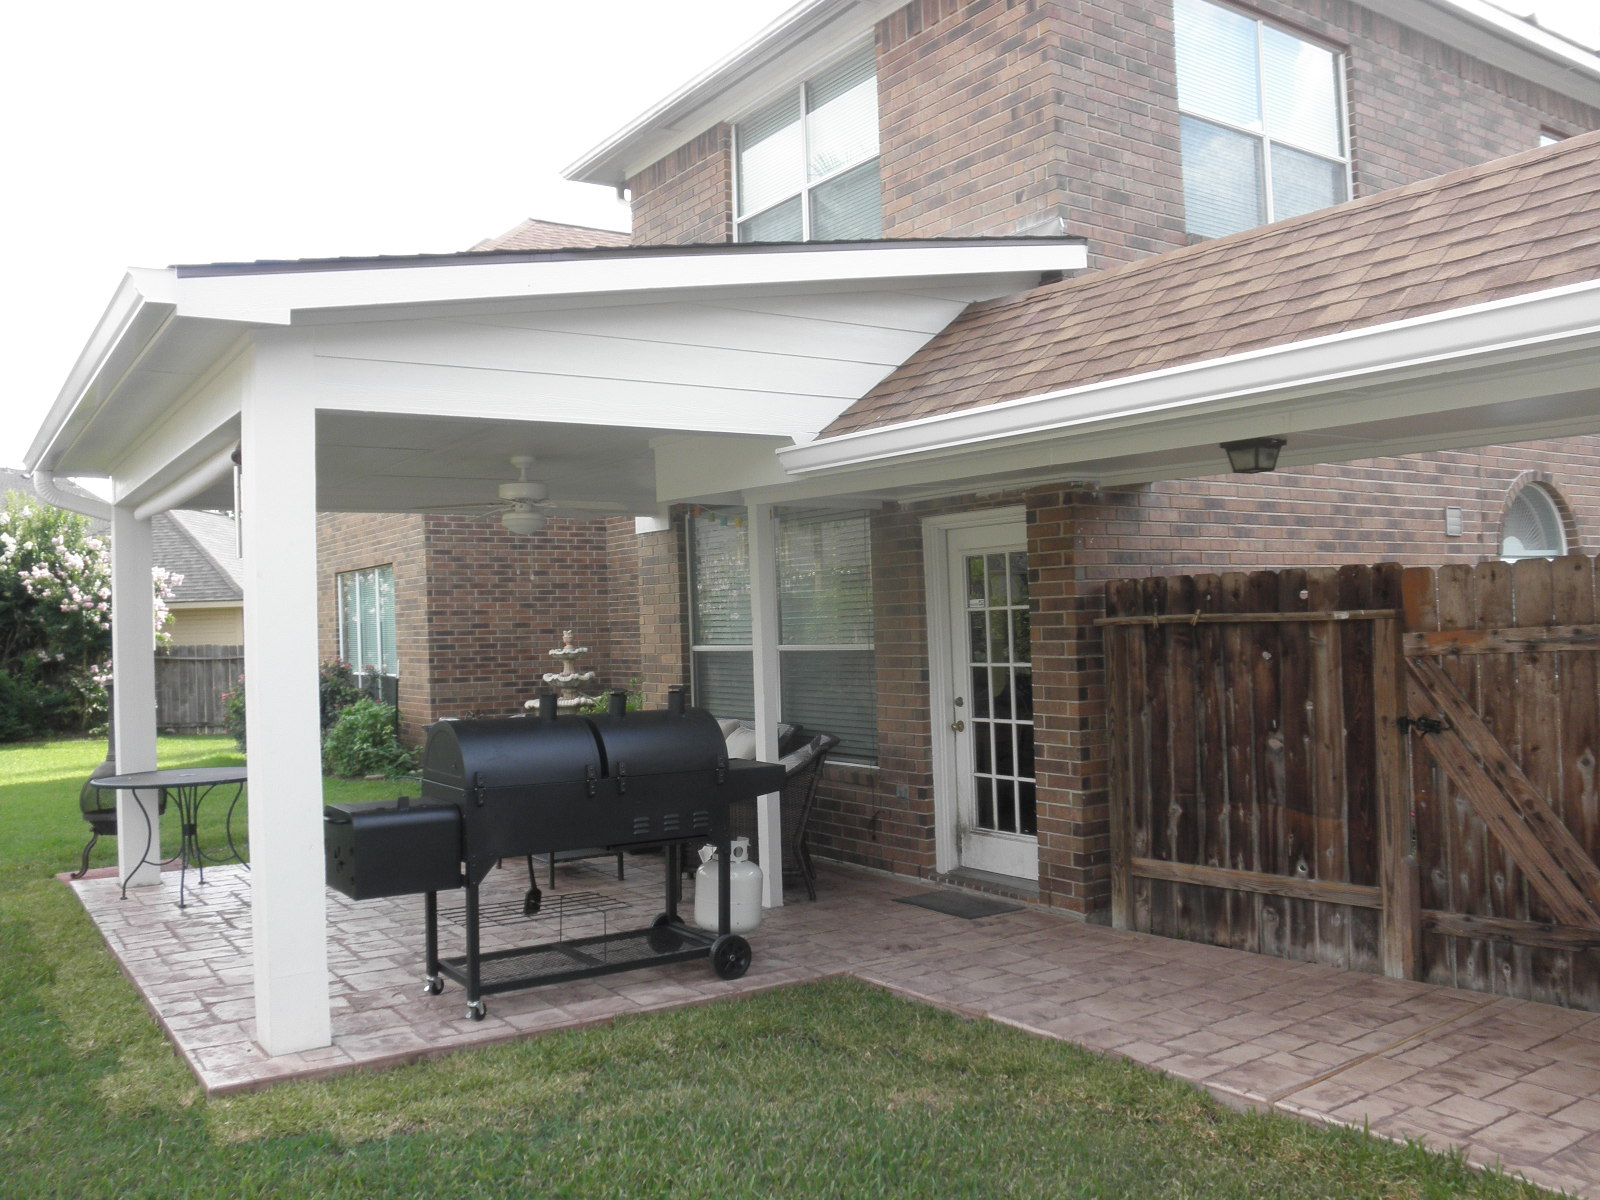 Custom Patio Covers in Sugar Land TX – Affordable Shade Patio Covers